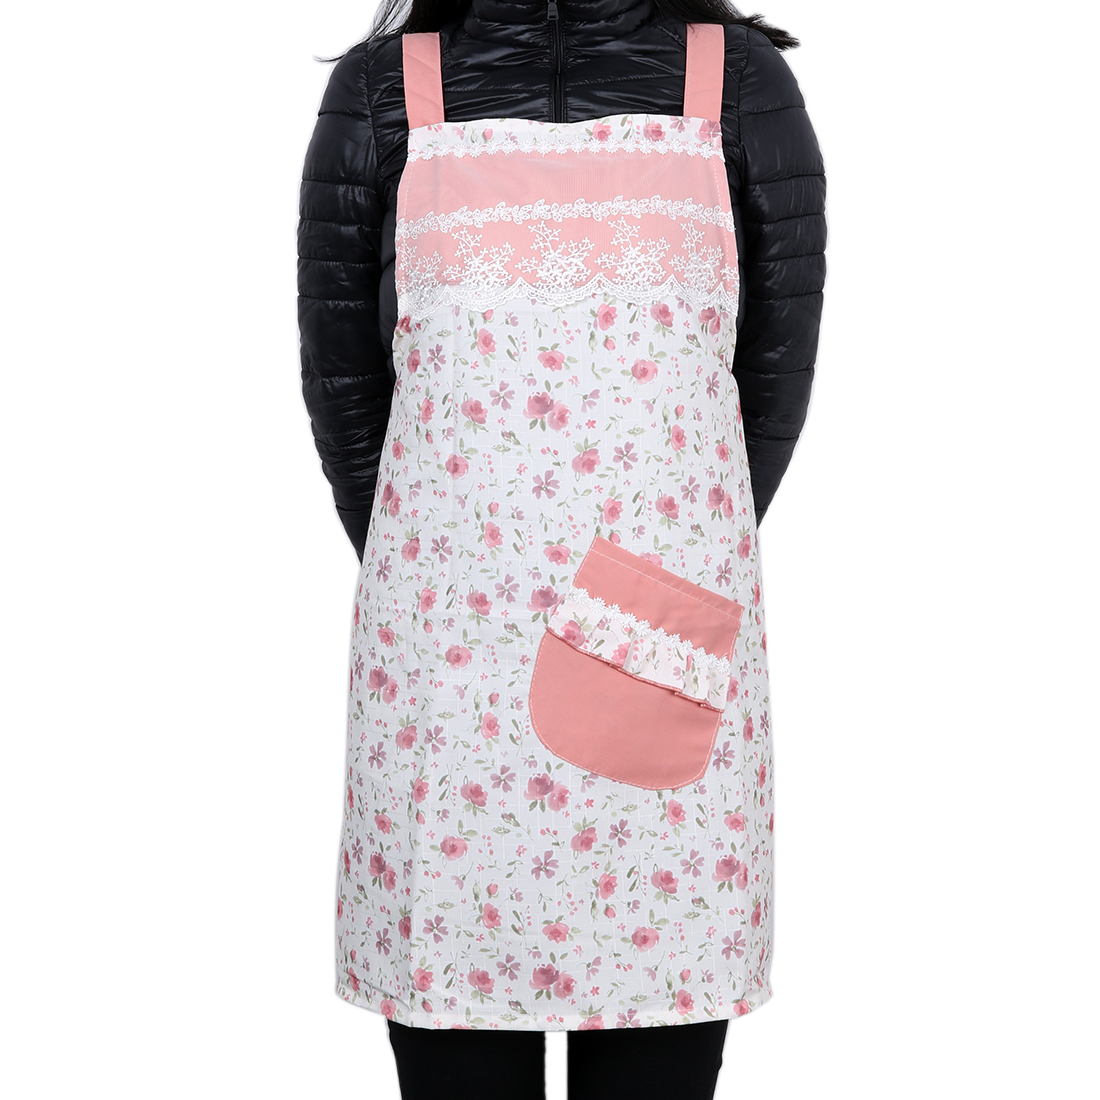 Floral Style Lady Chef Butcher Apron Kitchen Cooking Craft Baking Peachpuff